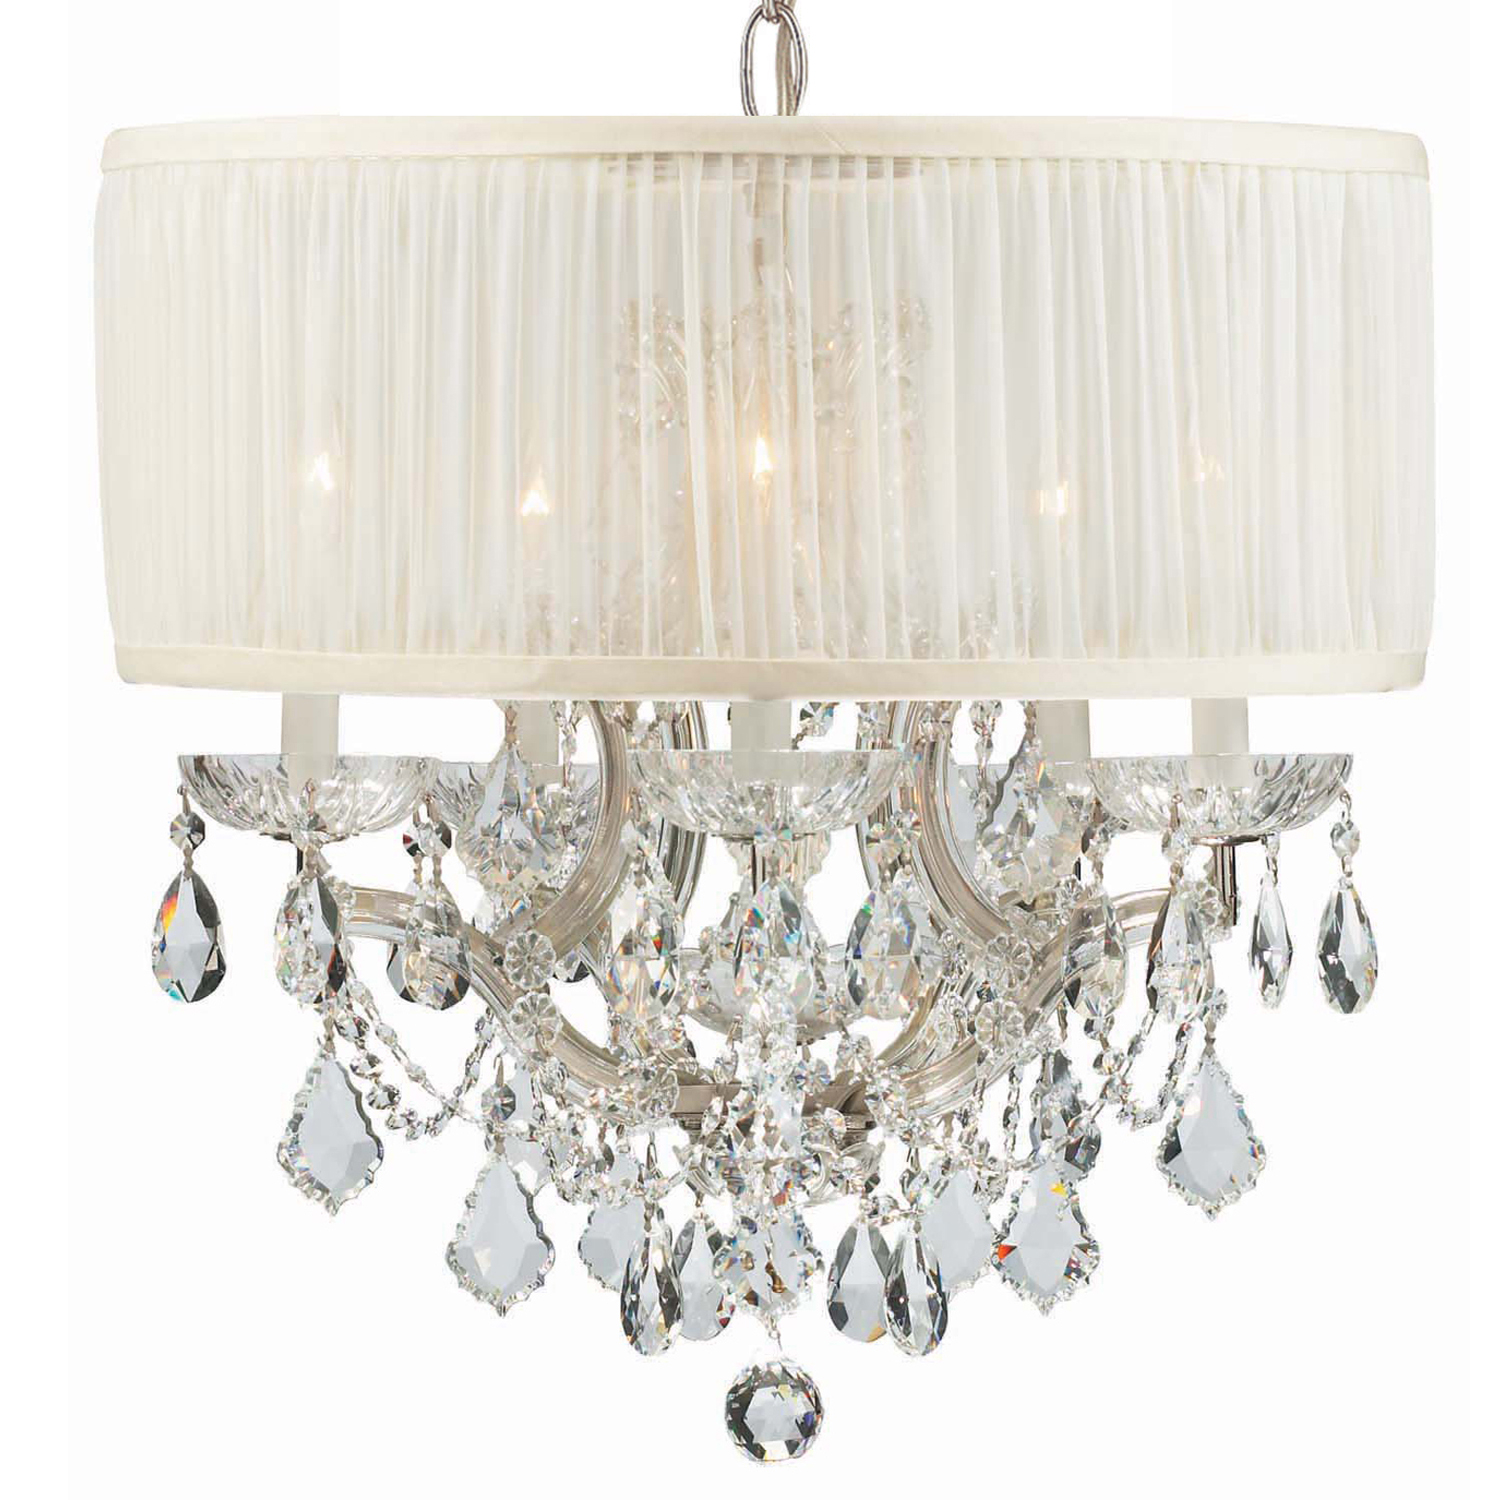 "Crystorama ""Brentwood"" Chandelier in Chrome neoclassical lighting"